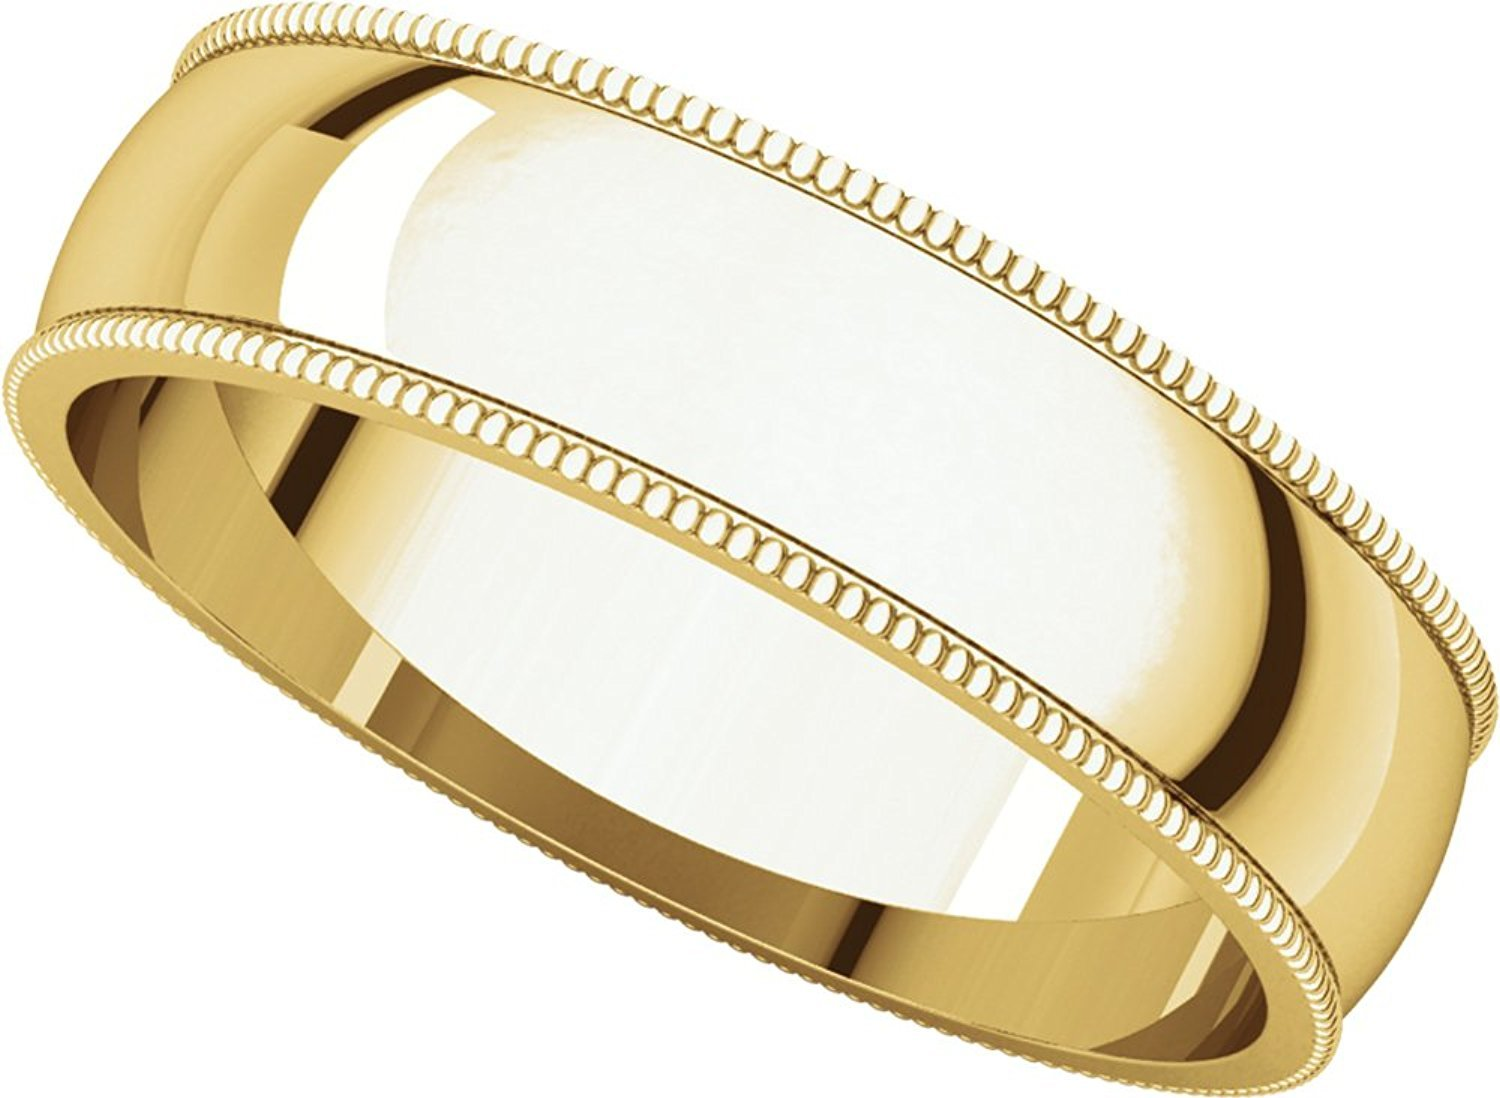 Plain Milgrain Wedding Band 14k Yellow Gold Ring Solid Polished Finish Regular Fit, 5 mm Size 5